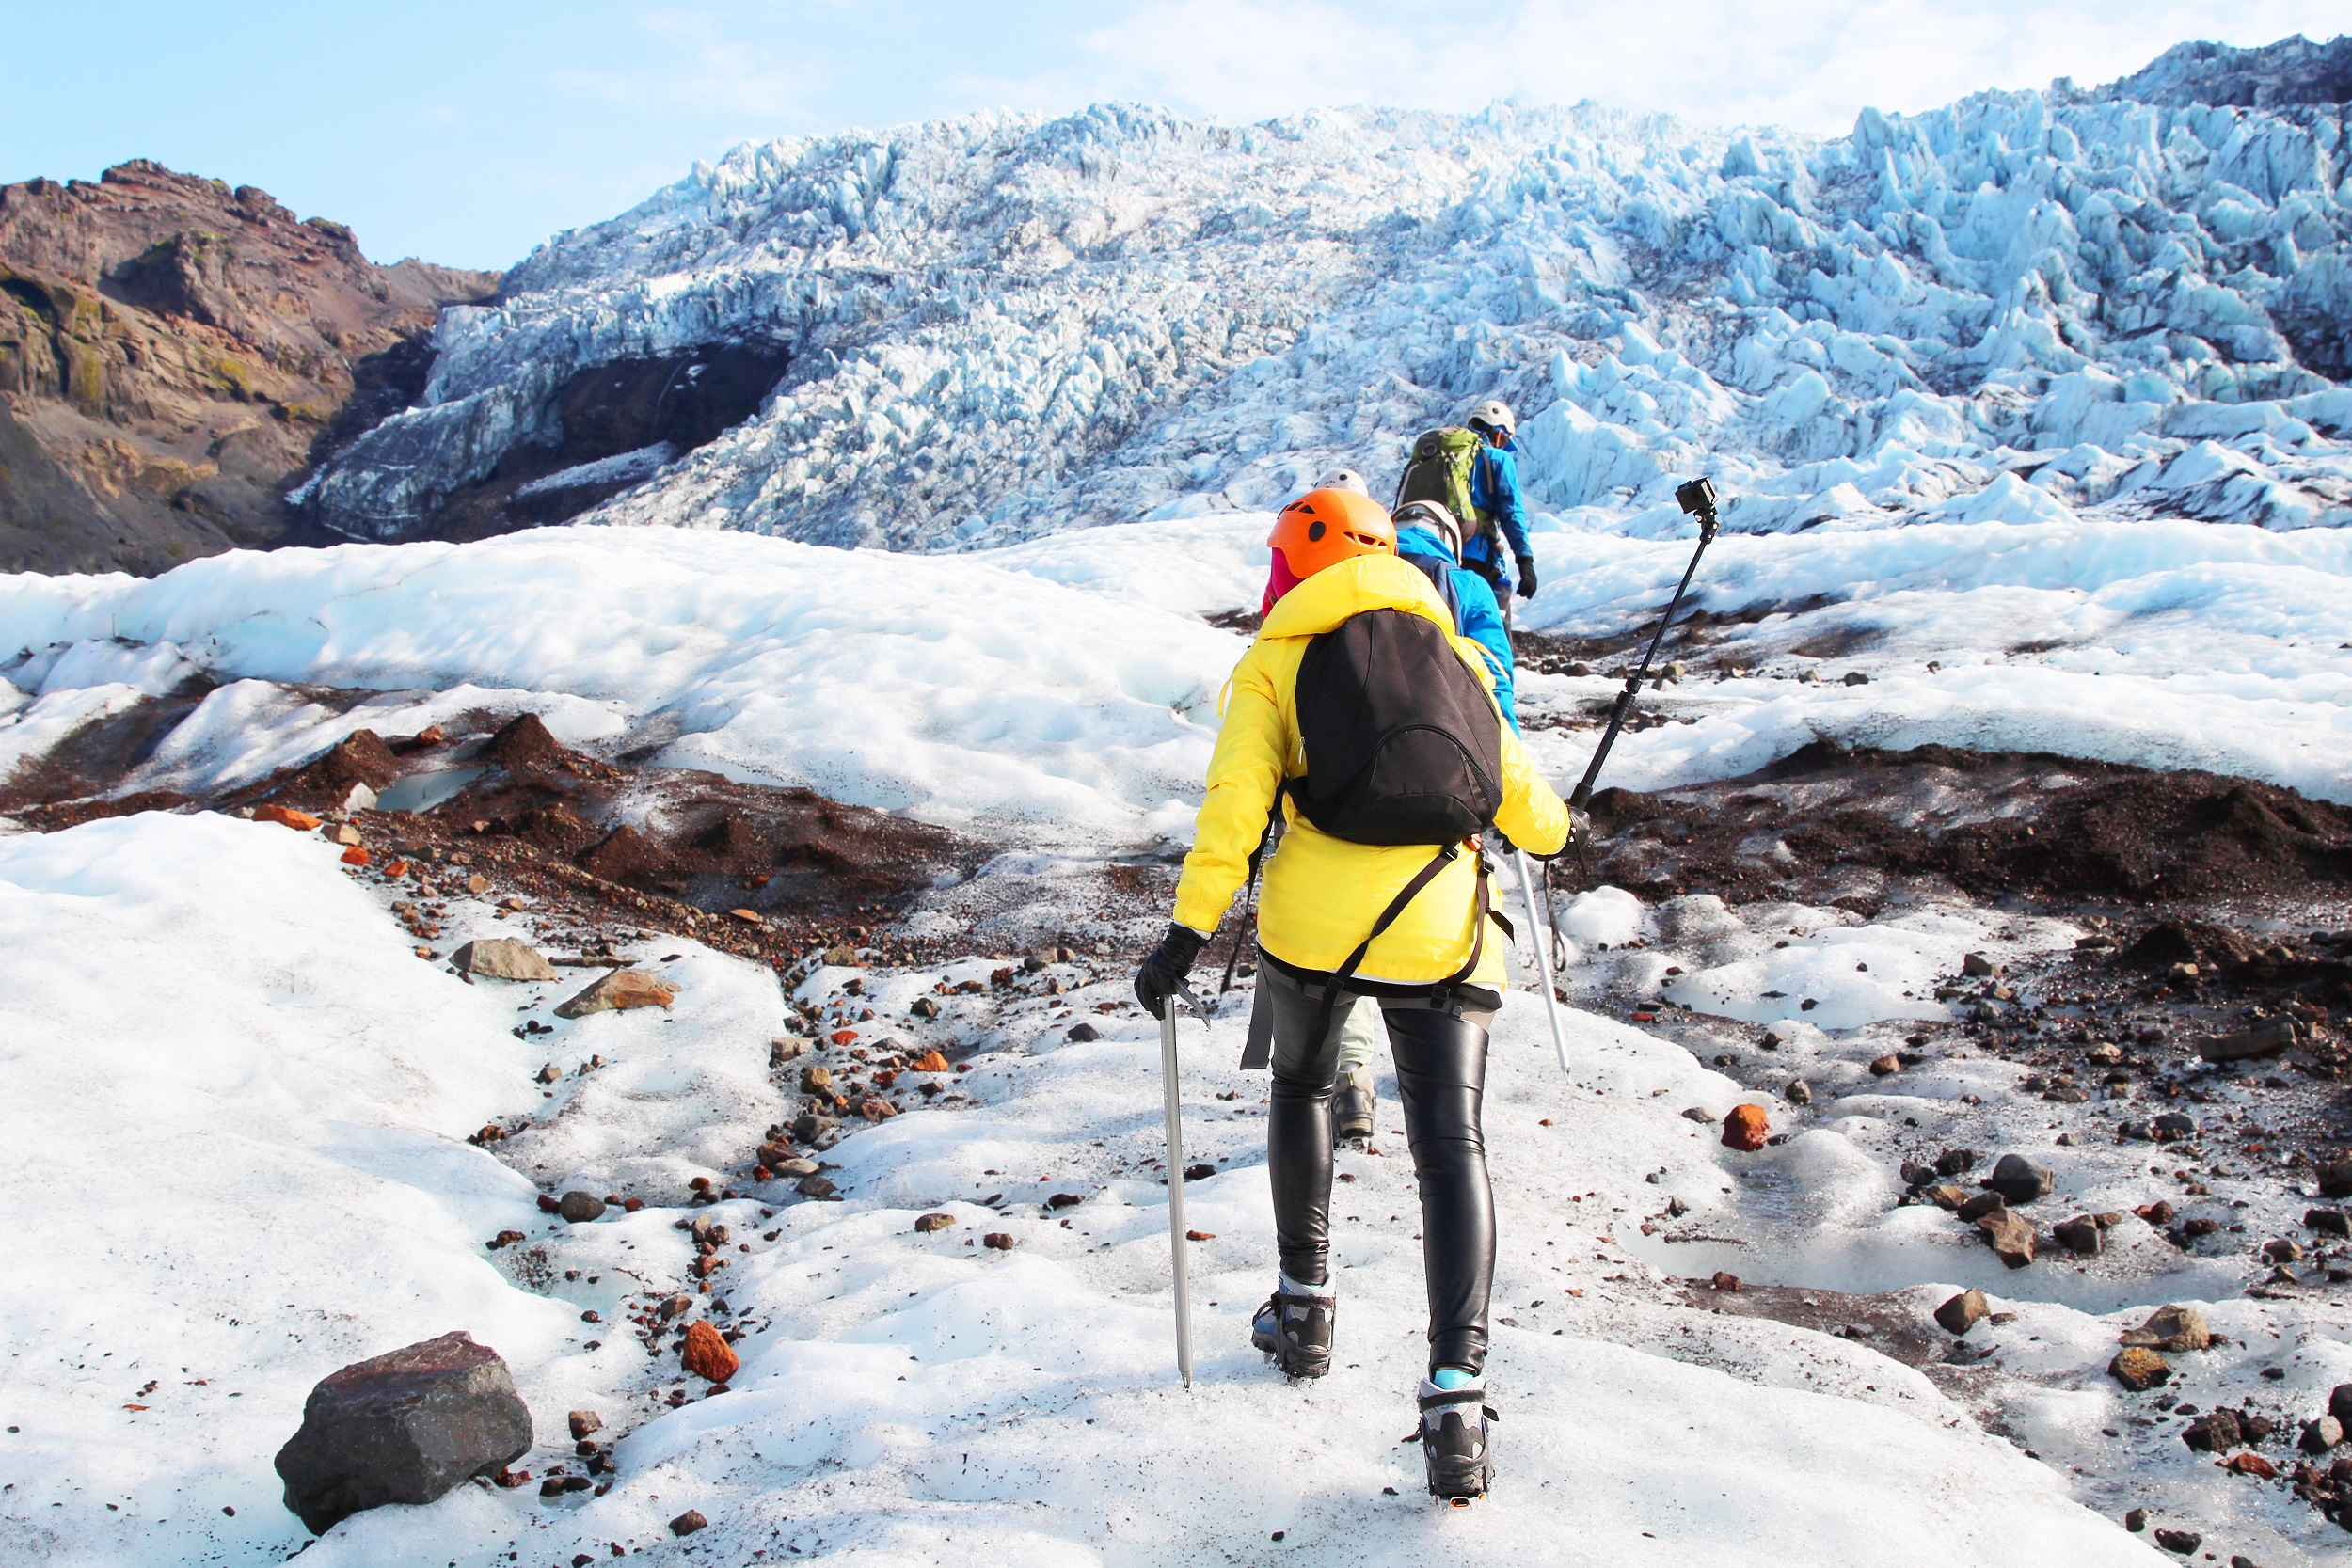 Hike up Sólheimajökull glacier on the South Coast to experience the ice of Iceland.